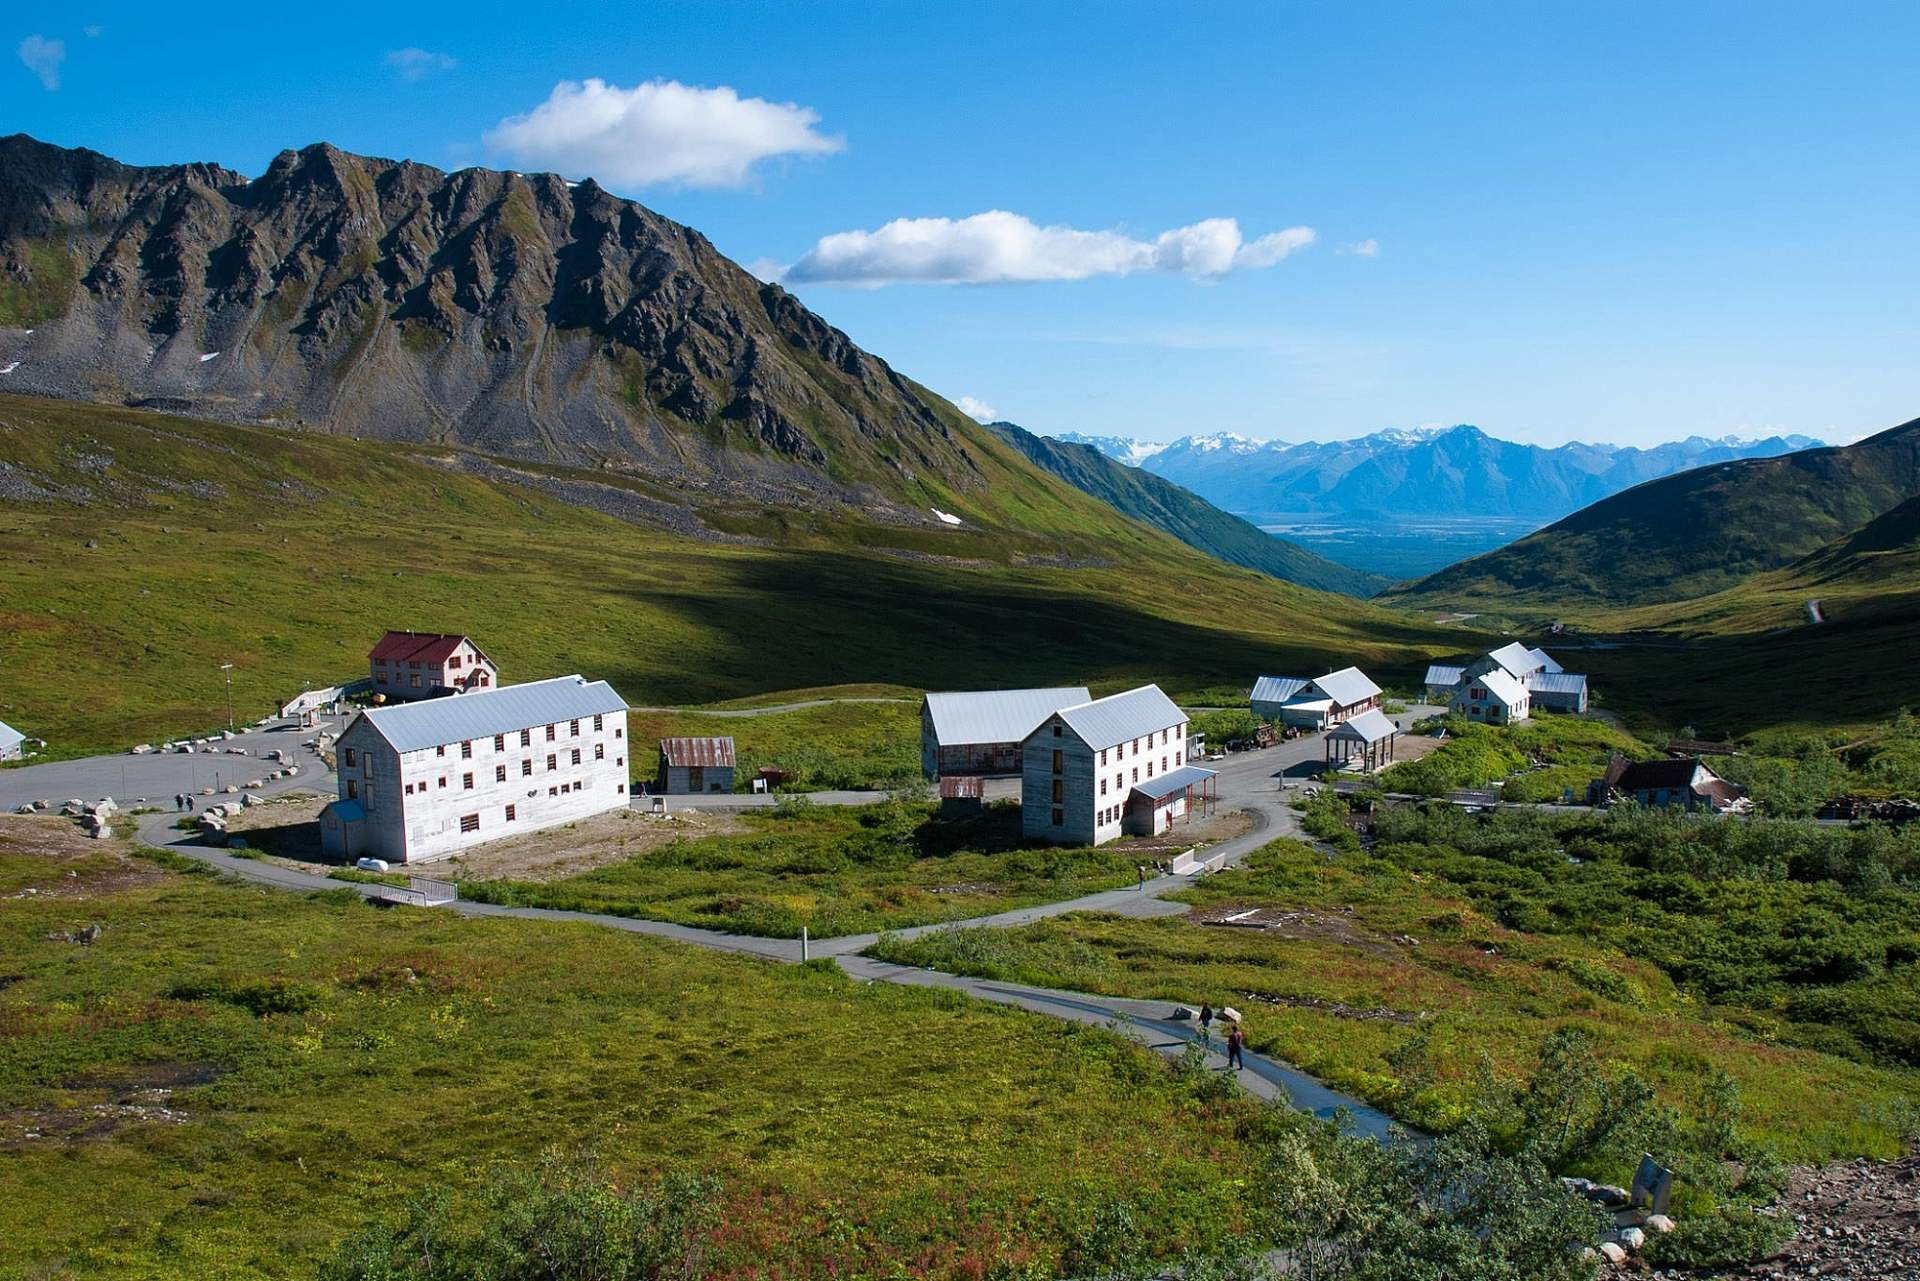 Explore the historic Independence Mine in Hatcher Pass